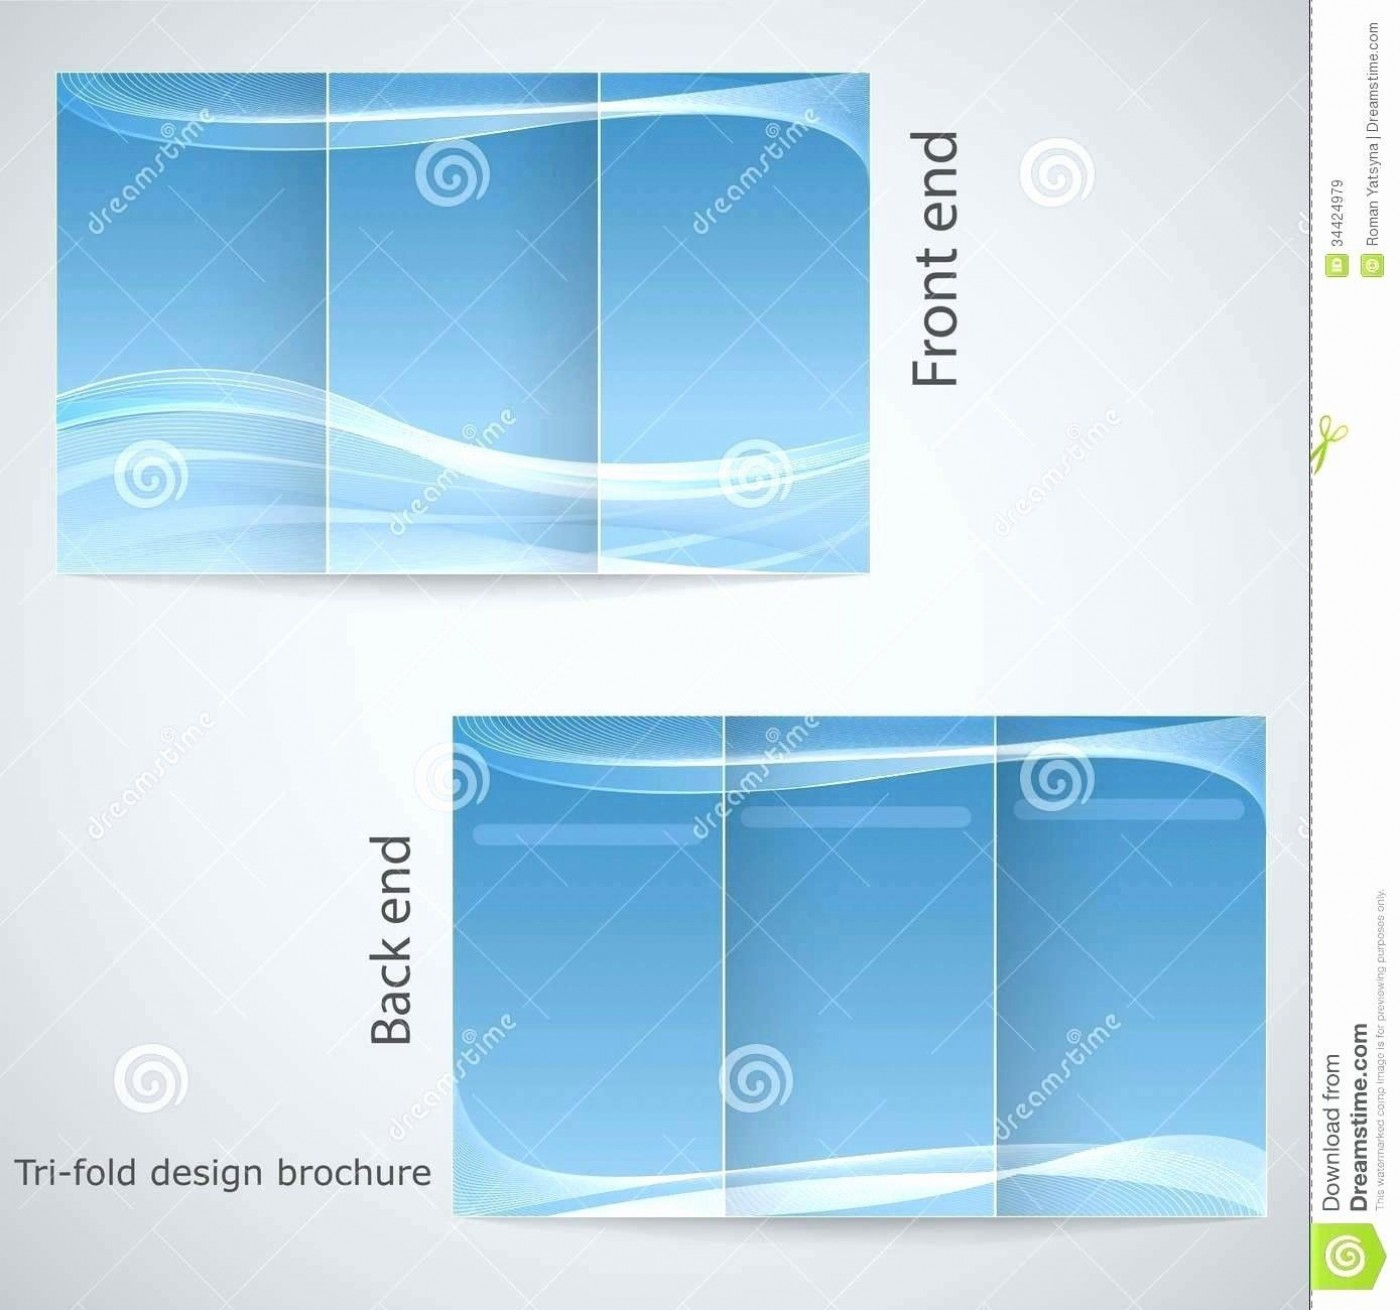 001 Marvelou M Word Tri Fold Brochure Template Highest Clarity  Microsoft Free Download1400